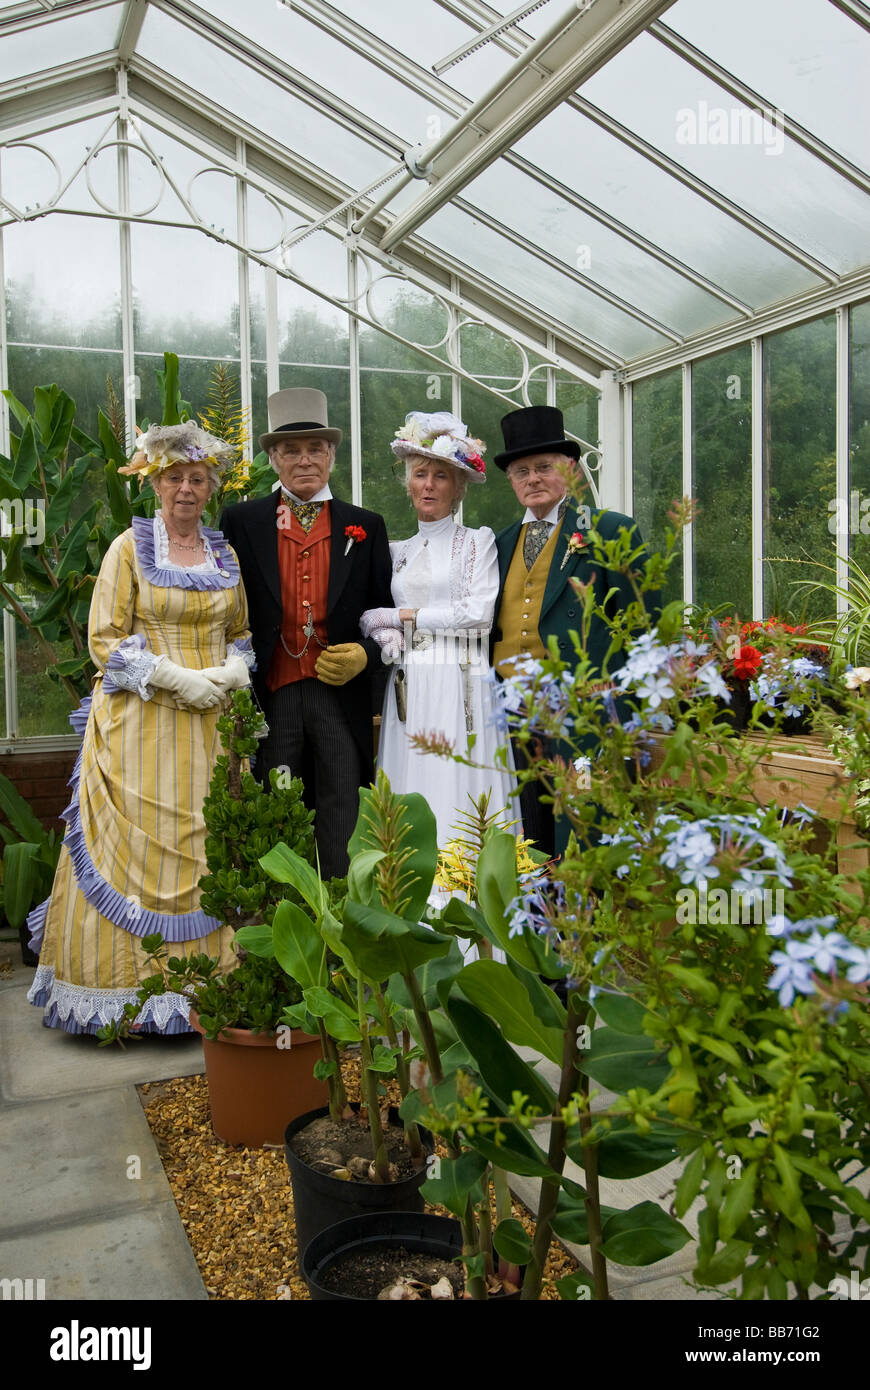 Ravishing People In Victorian Dress Posing In A Glasshouse At Hill Close  With Excellent People In Victorian Dress Posing In A Glasshouse At Hill Close Gardens  Warwick England Uk With Enchanting Planter Walls In Gardens Also Large Garden Storage Box In Addition Grannys Garden And Spa Covent Garden As Well As Walsh Hatton Garden Additionally Garden Drinks Cooler From Alamycom With   Excellent People In Victorian Dress Posing In A Glasshouse At Hill Close  With Enchanting People In Victorian Dress Posing In A Glasshouse At Hill Close Gardens  Warwick England Uk And Ravishing Planter Walls In Gardens Also Large Garden Storage Box In Addition Grannys Garden From Alamycom